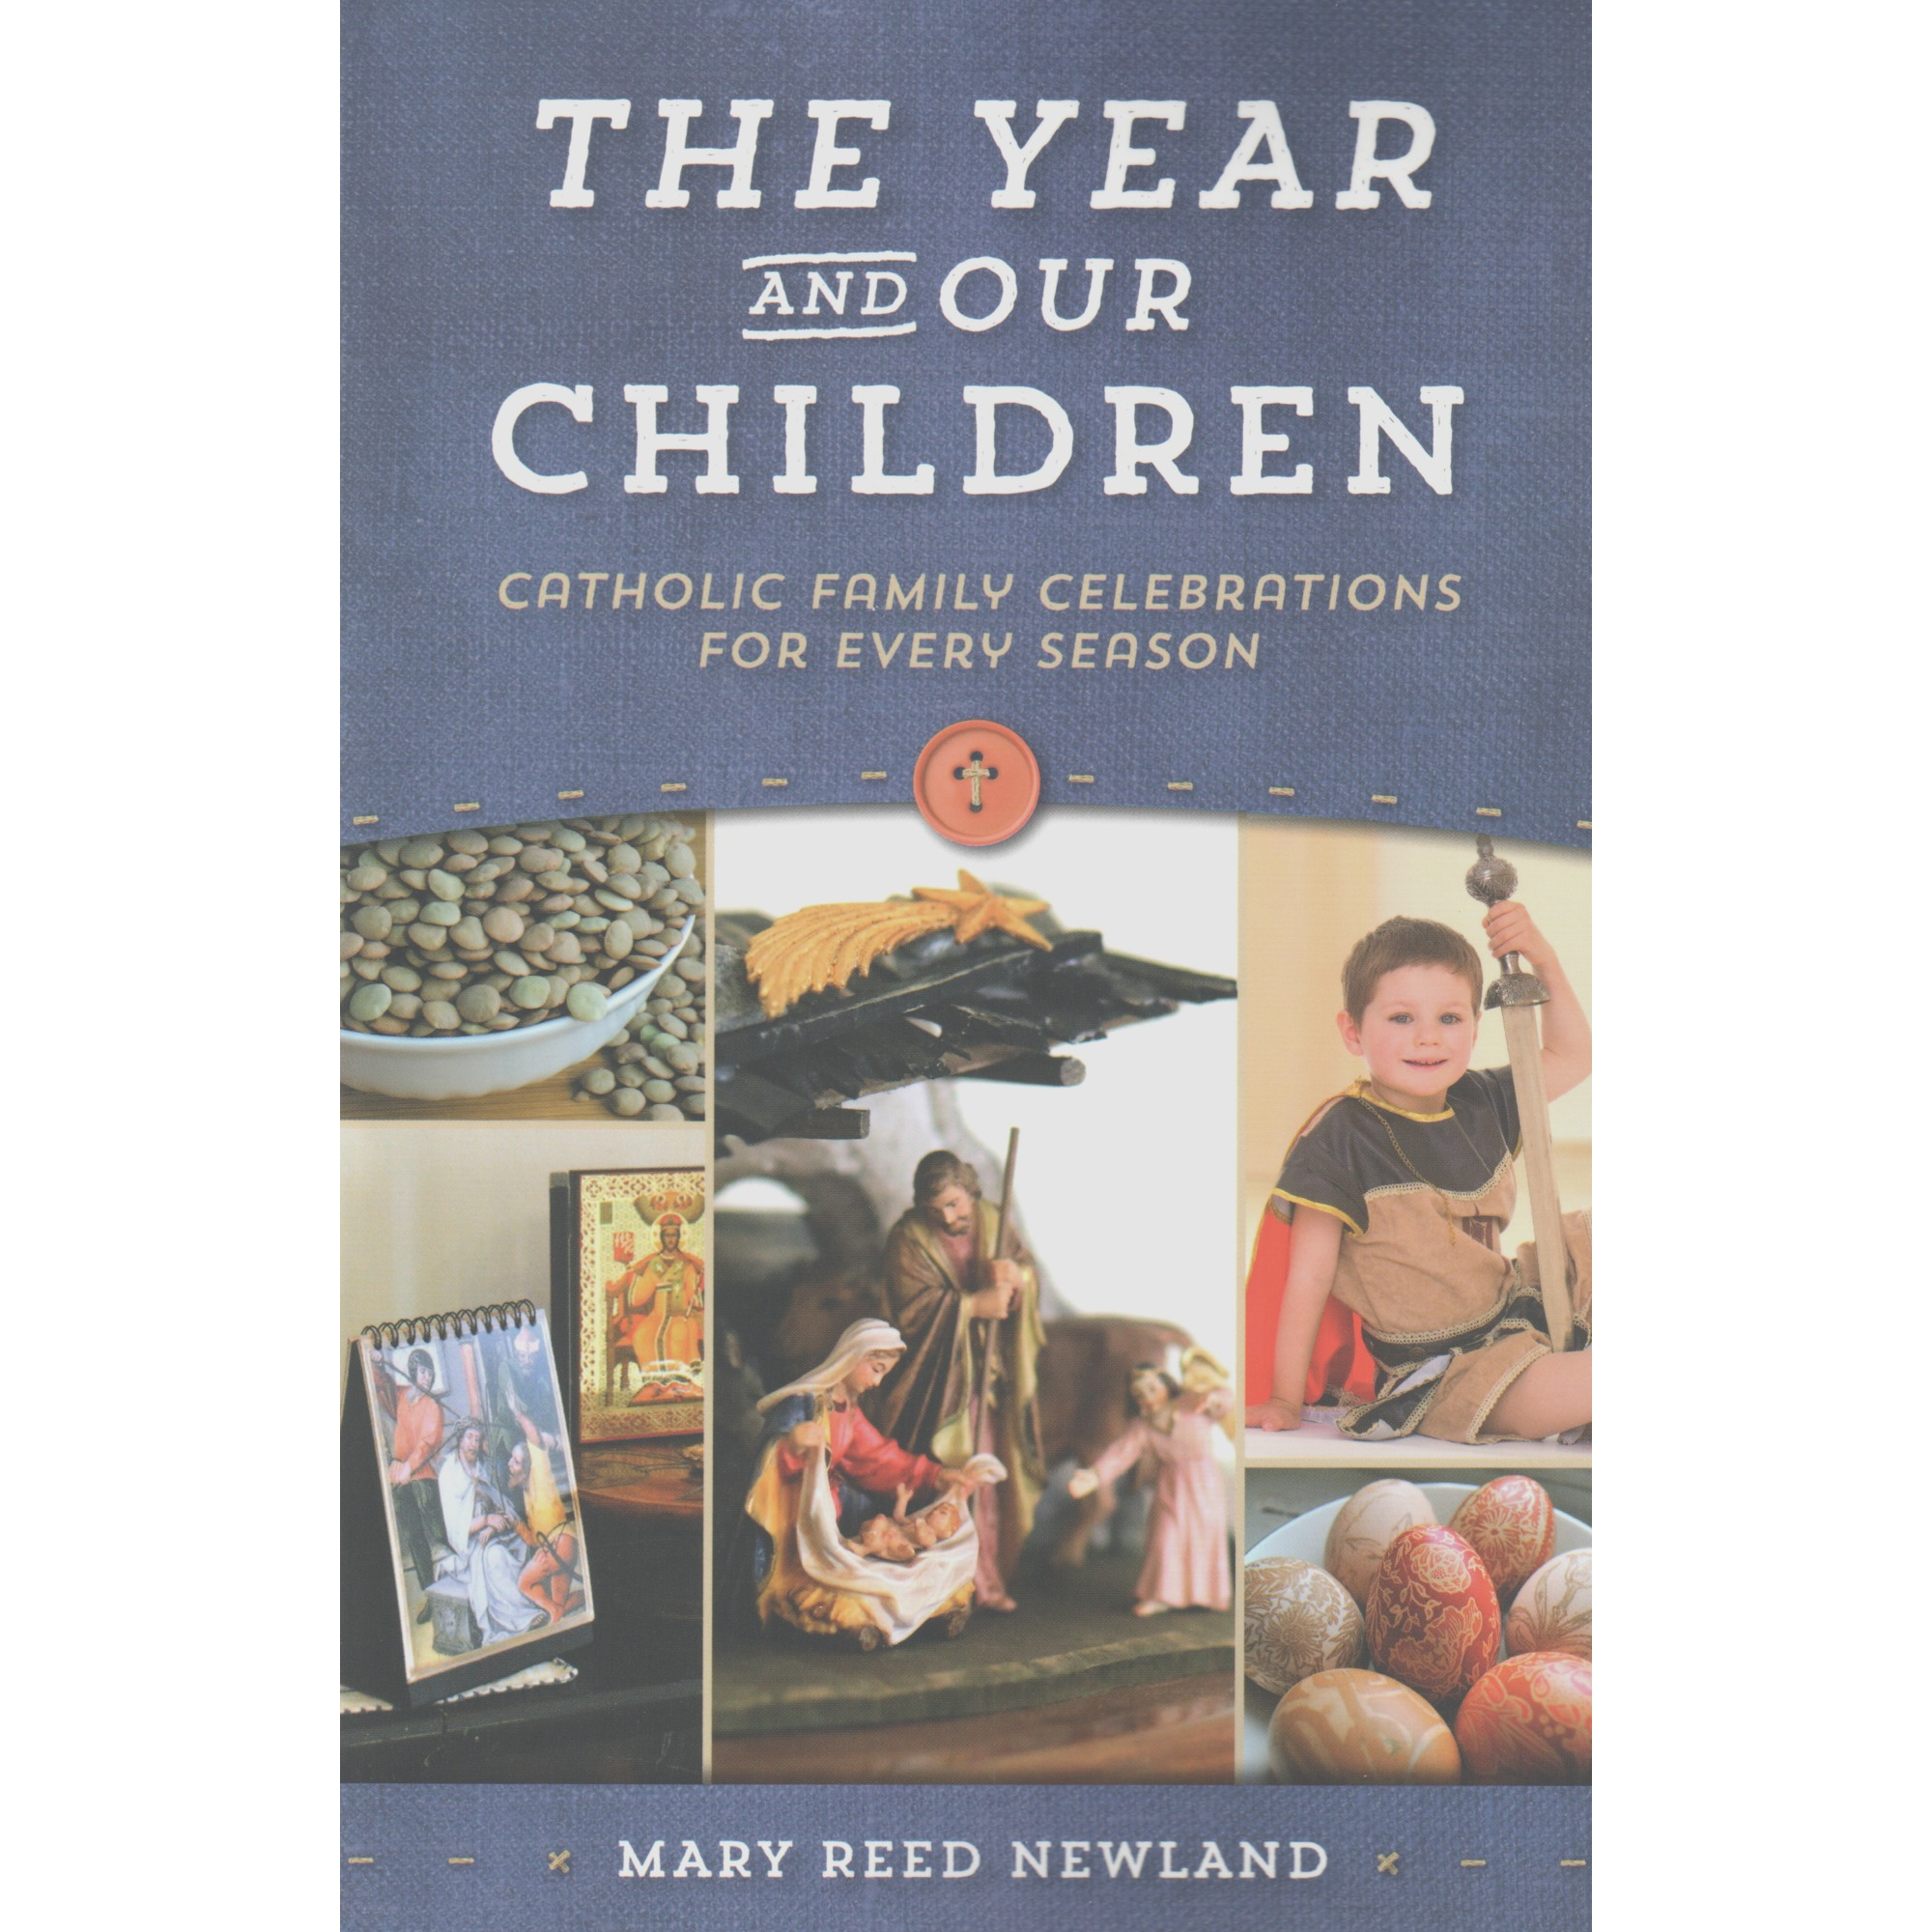 The Year and Our Children